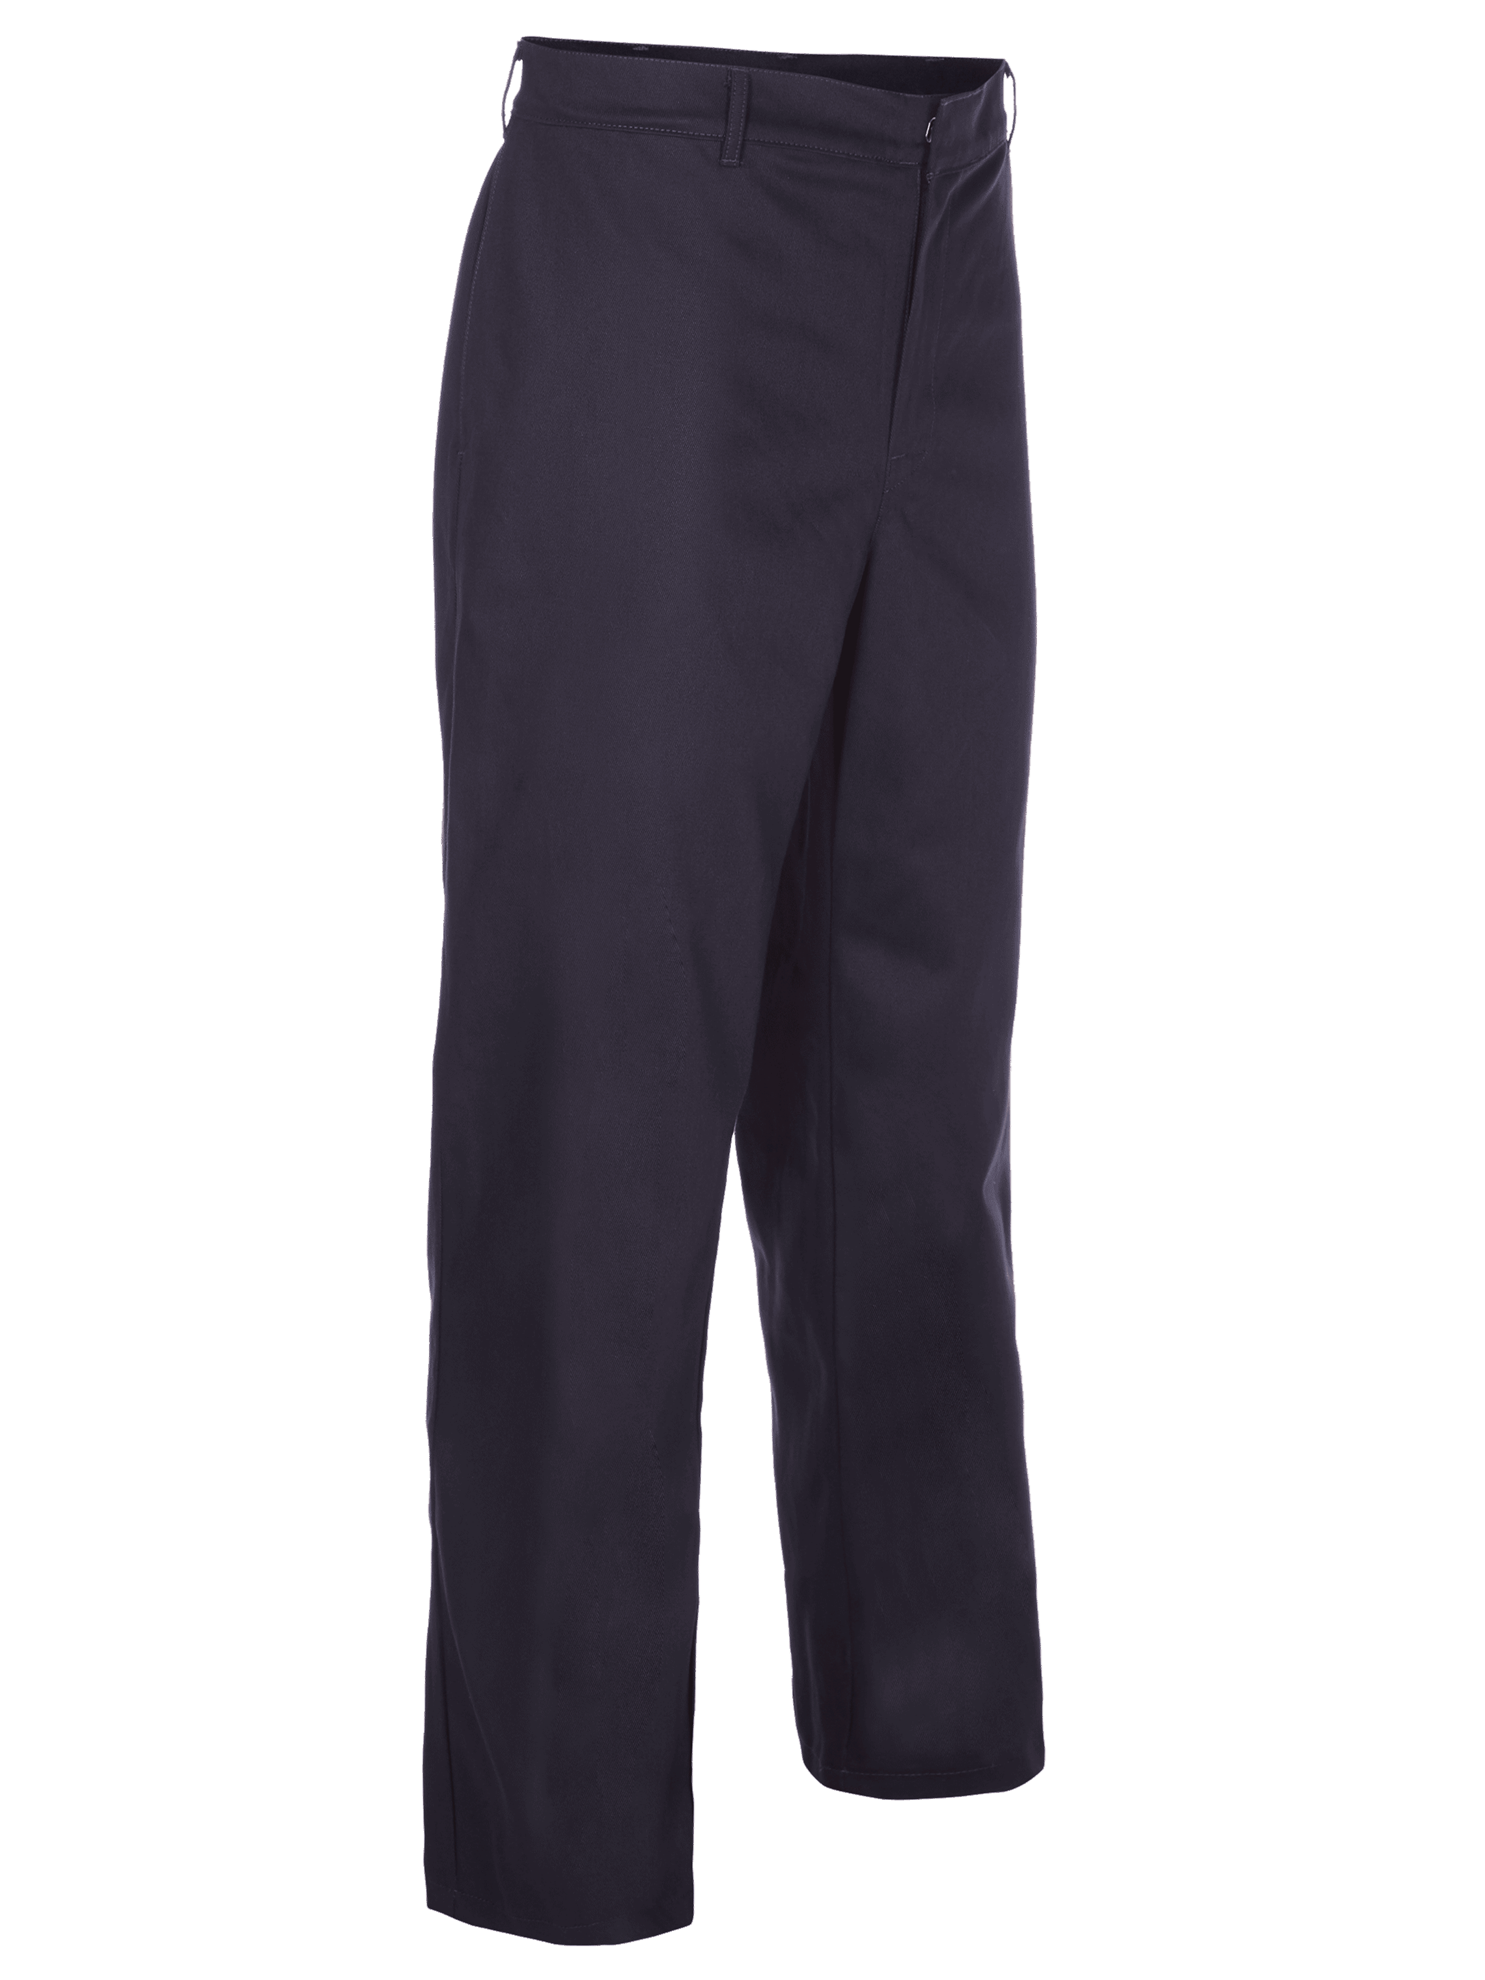 Picture of Trouser made with Phoenix - Navy